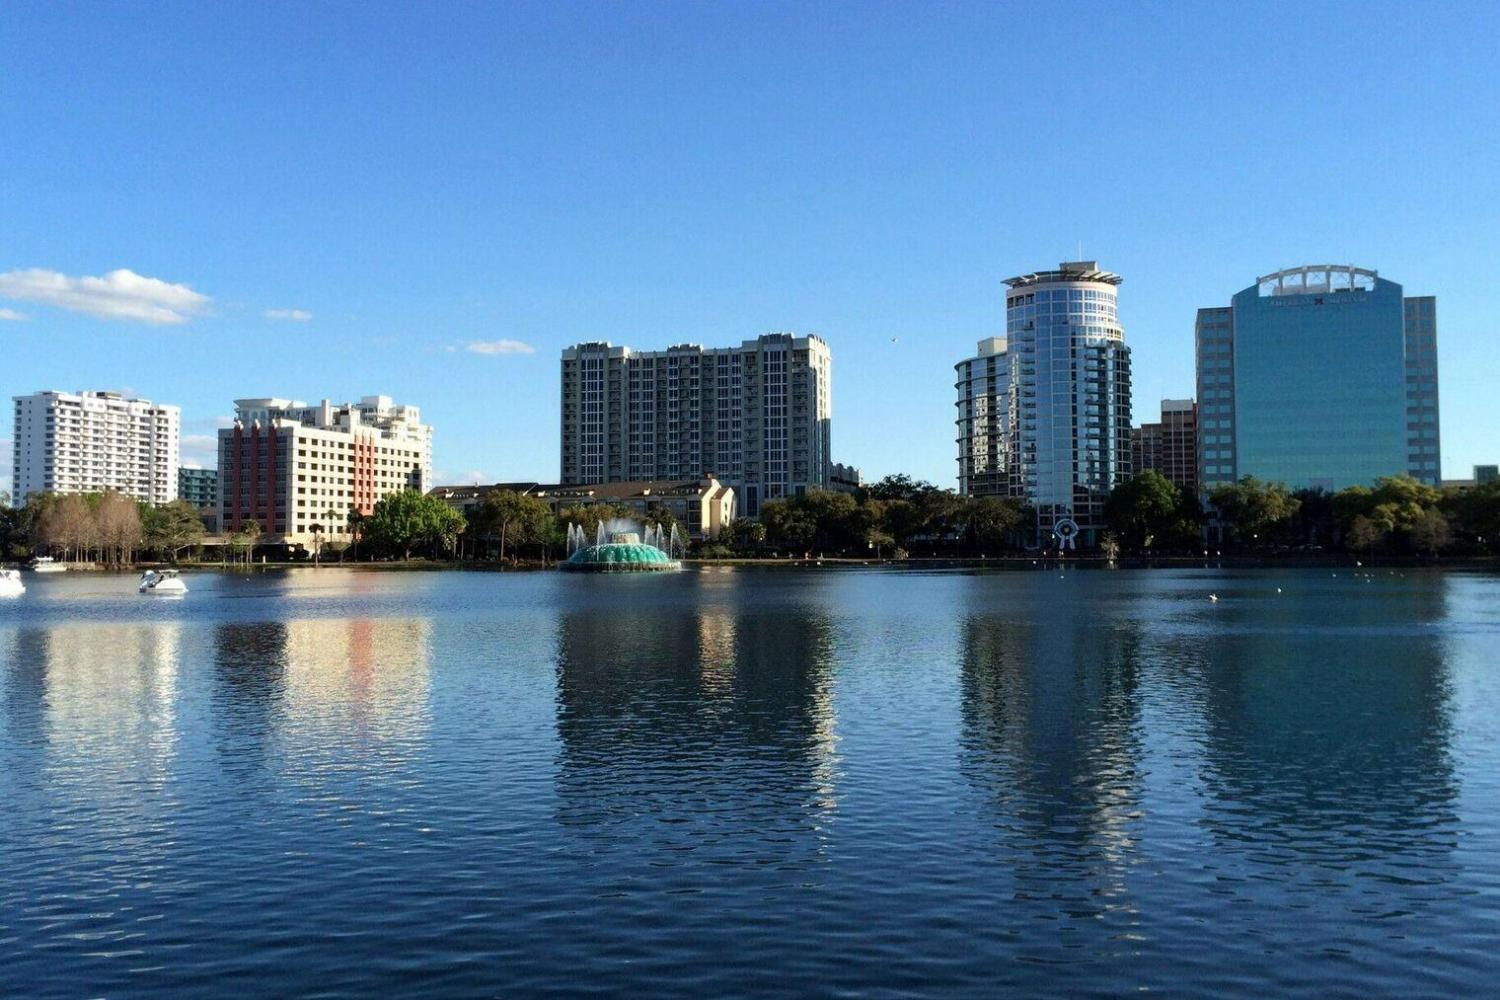 See the sights of Orlando on this intriguing city tour